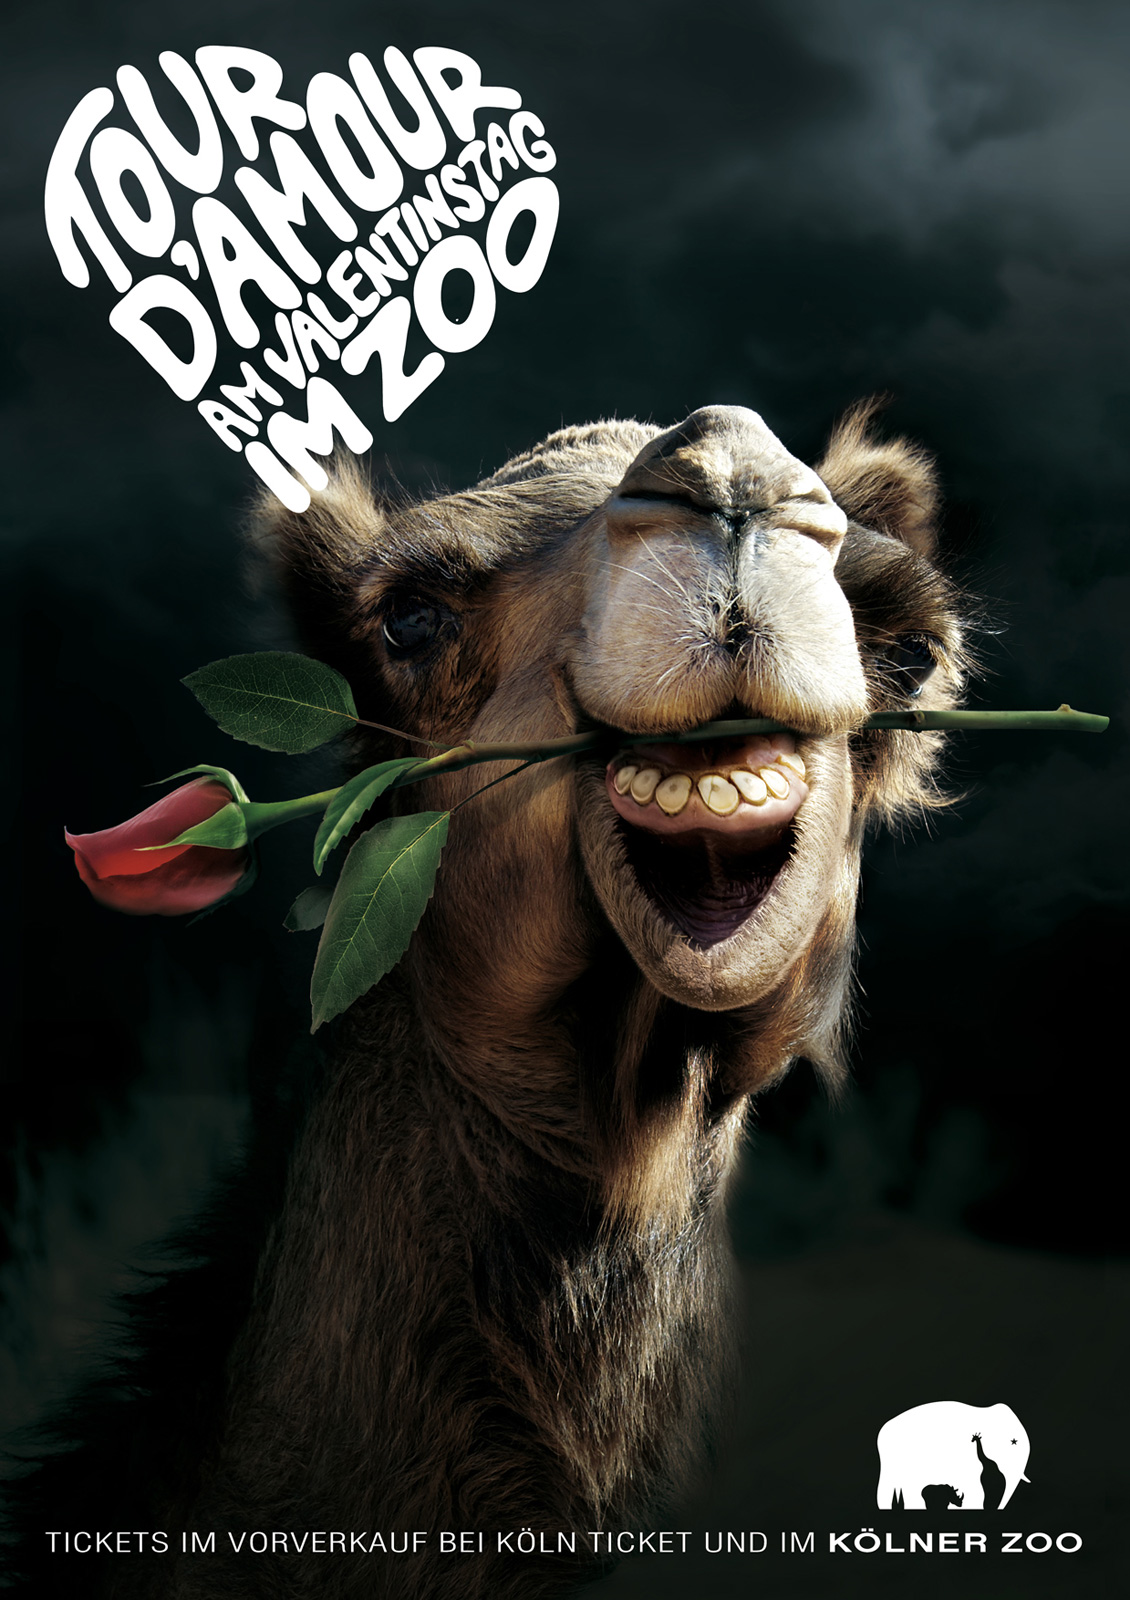 llllitl-kolner-zoo-koln-allemagne-deutschland-advertising-publicité-animals-saint-valentin-day